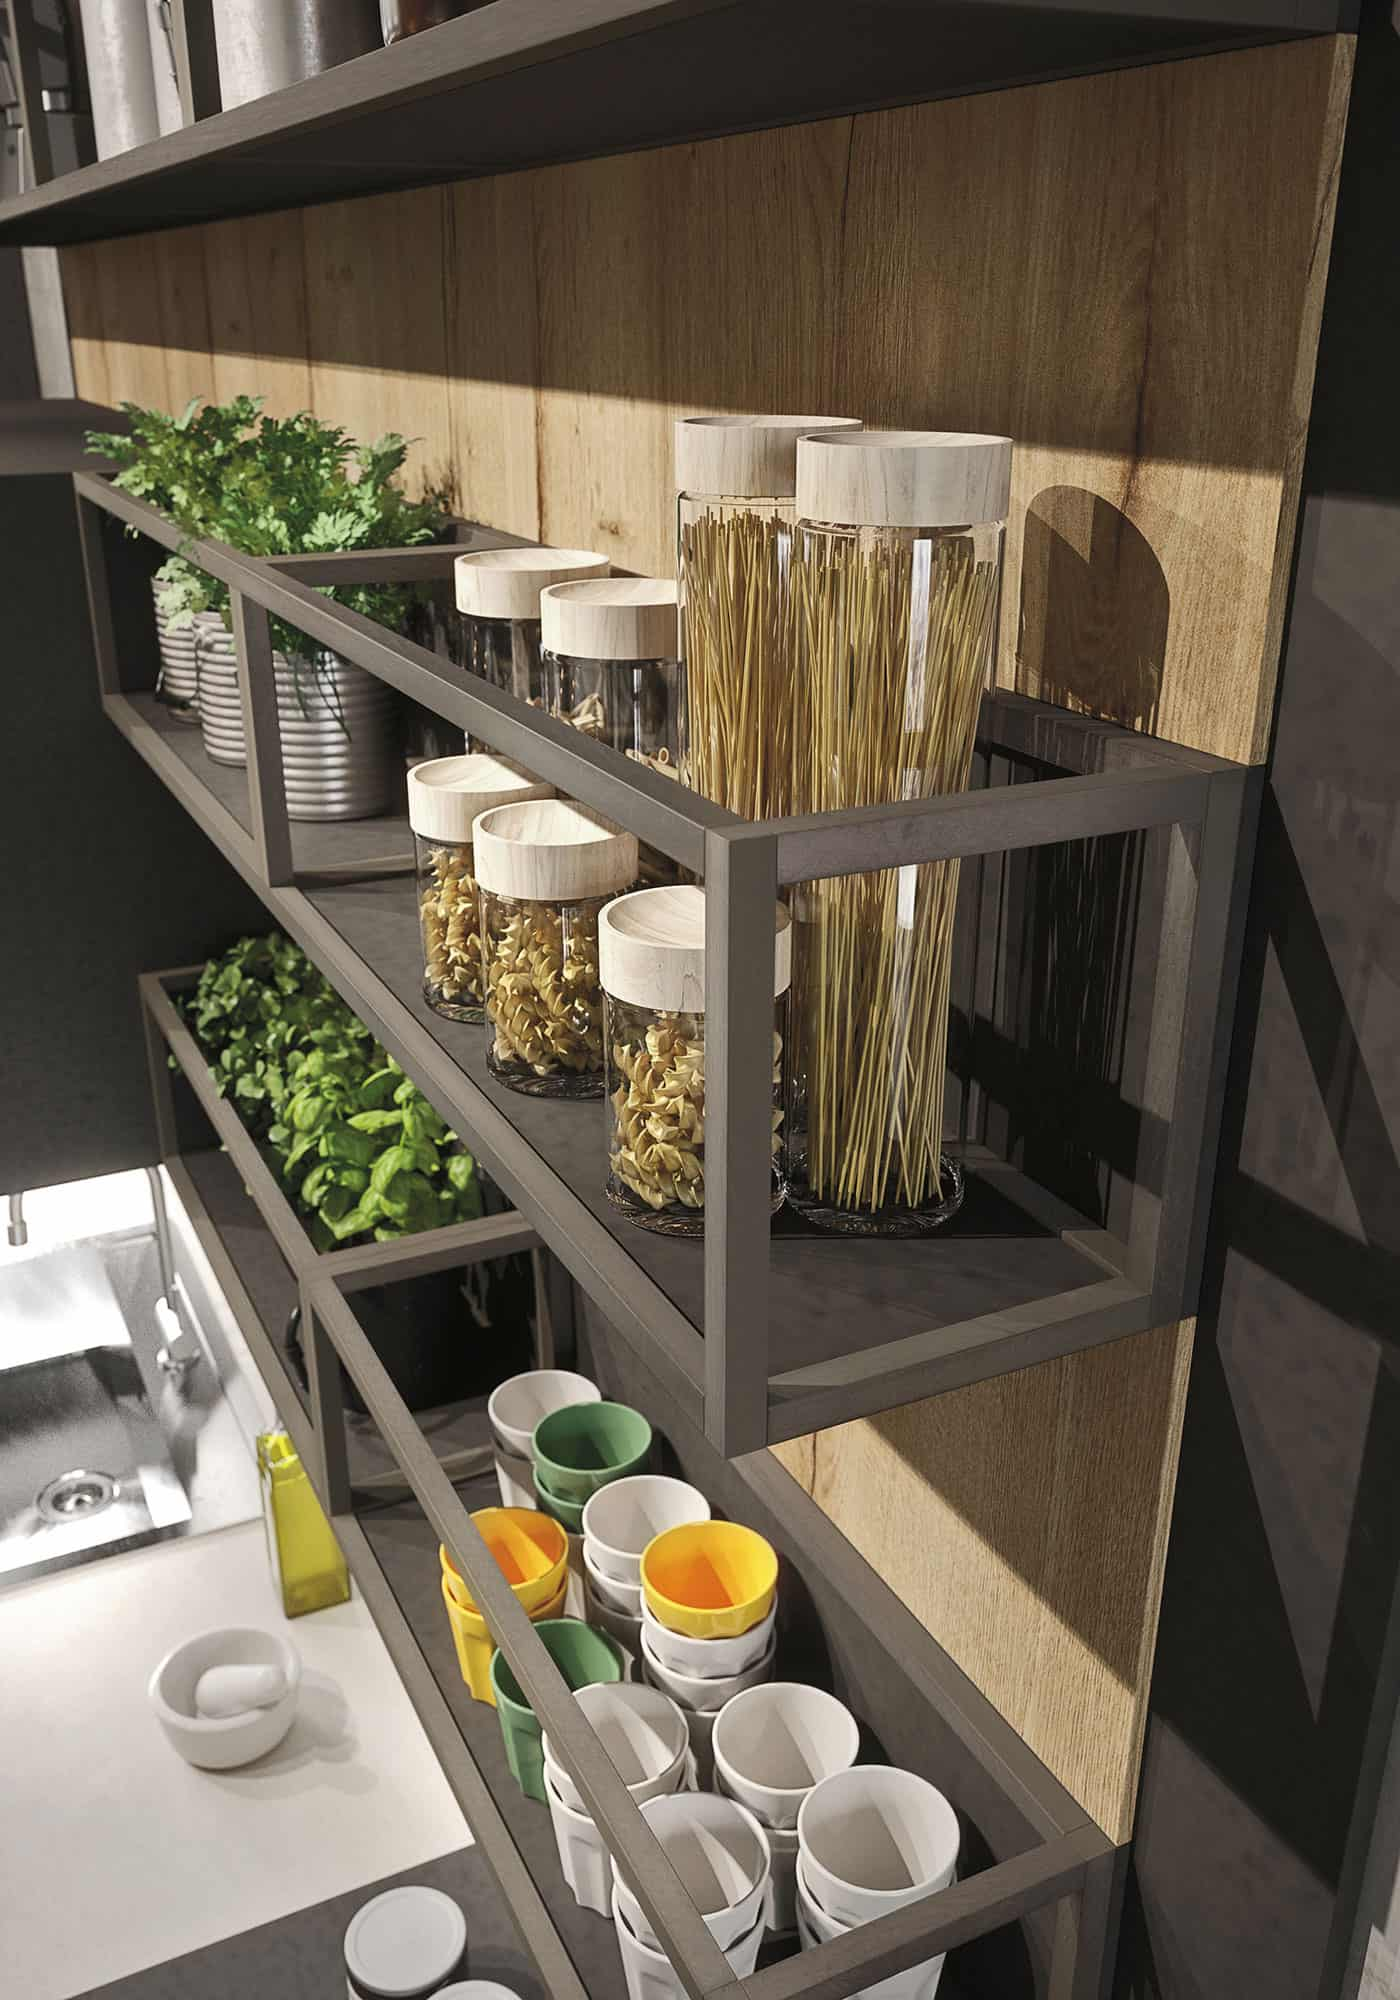 wood shelves kitchen europa cabinets design for lofts: 3 urban ideas from snaidero